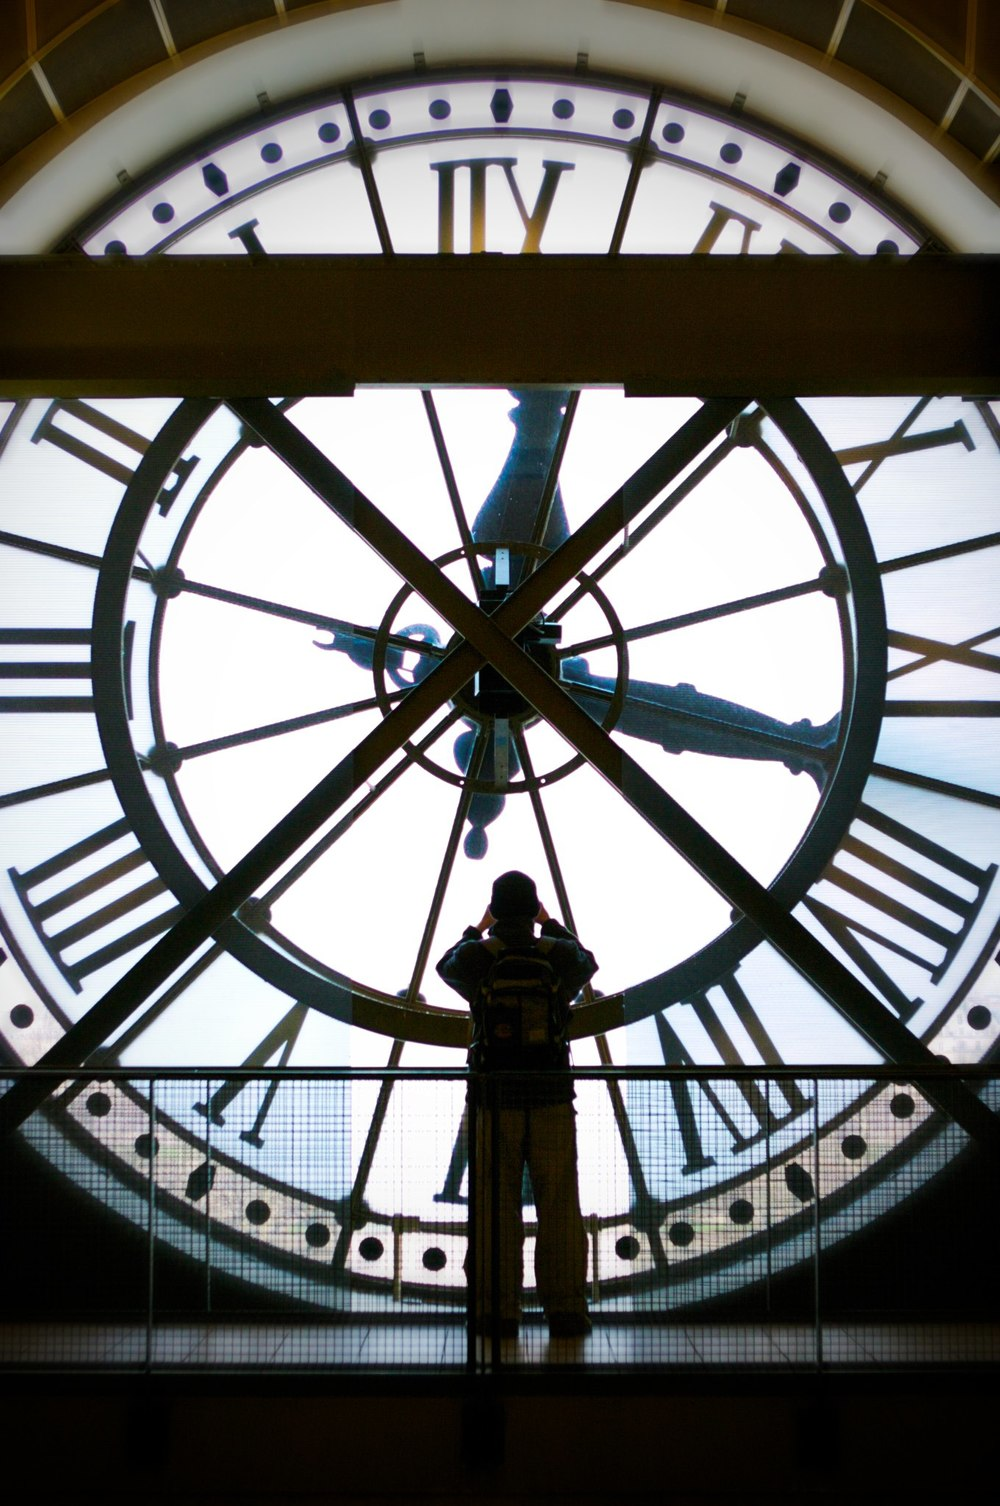 Clock in the Musee D'Orsay in Paris, France